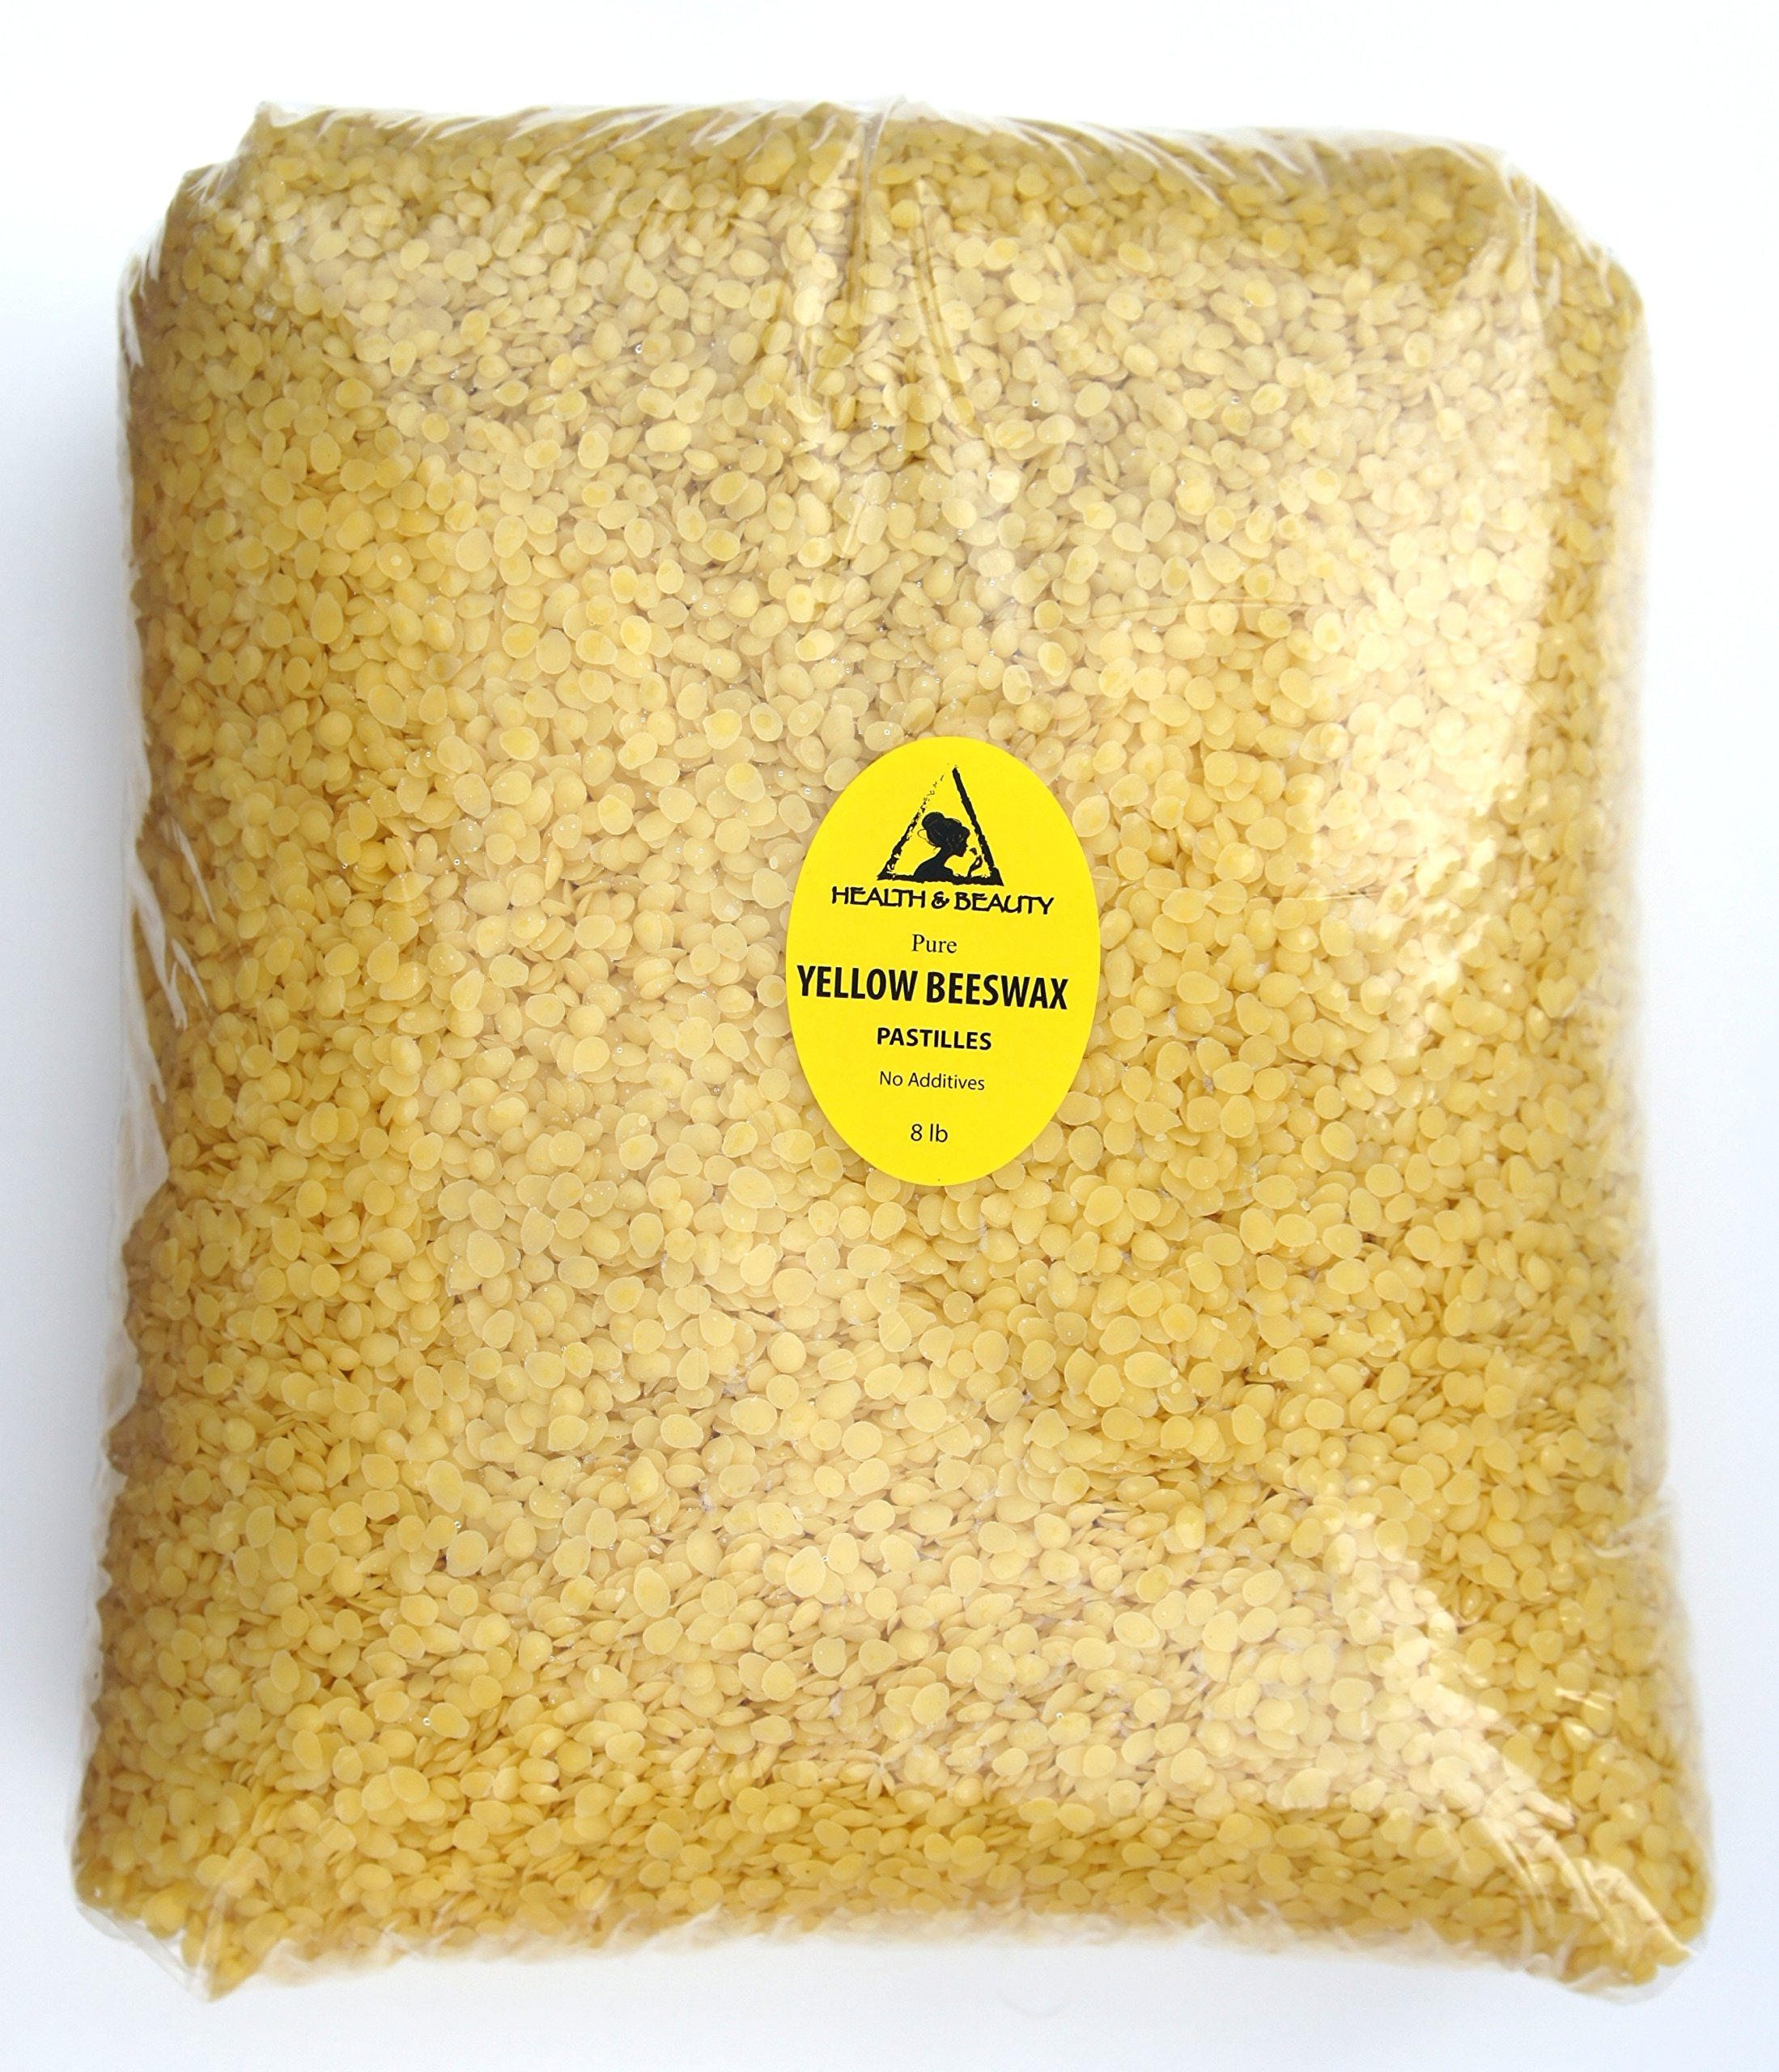 Yellow Beeswax Bees Wax Organic Pastilles Beads Premium Prime Grade A 100% Pure 8 LB